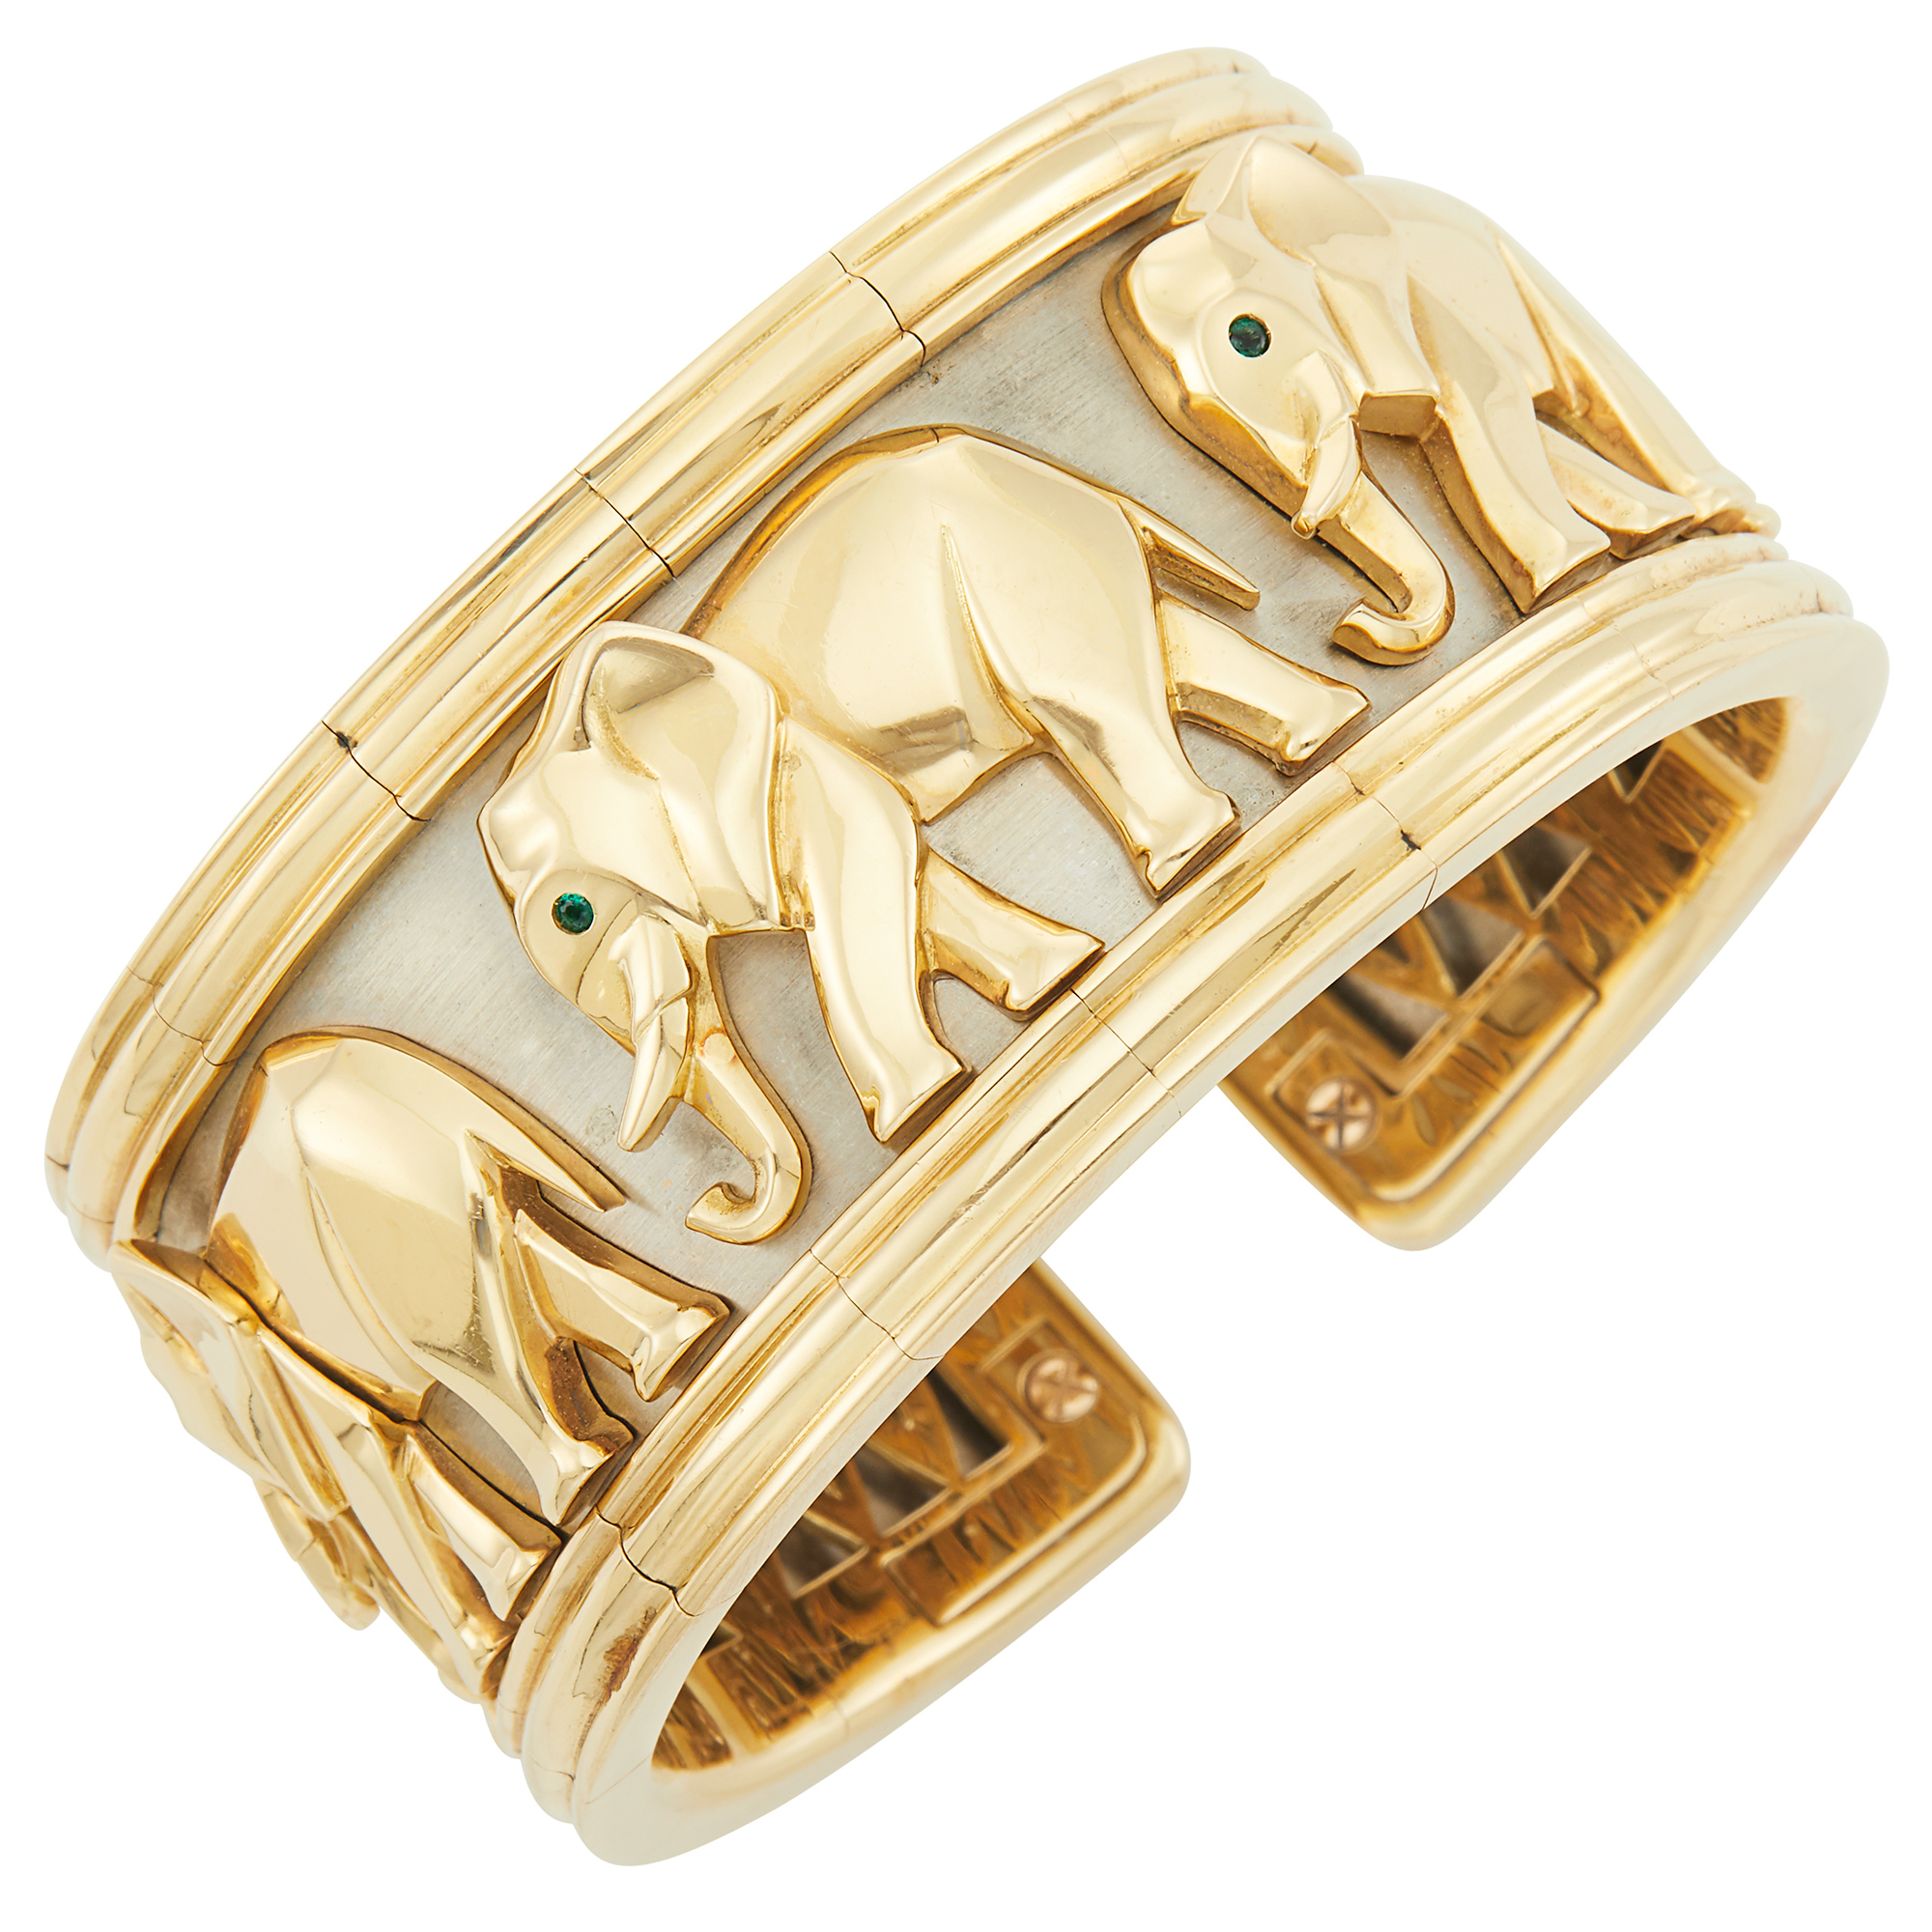 Lot image - Two-Color Gold and Emerald Elephant Cuff Bangle Bracelet, Cartier, France